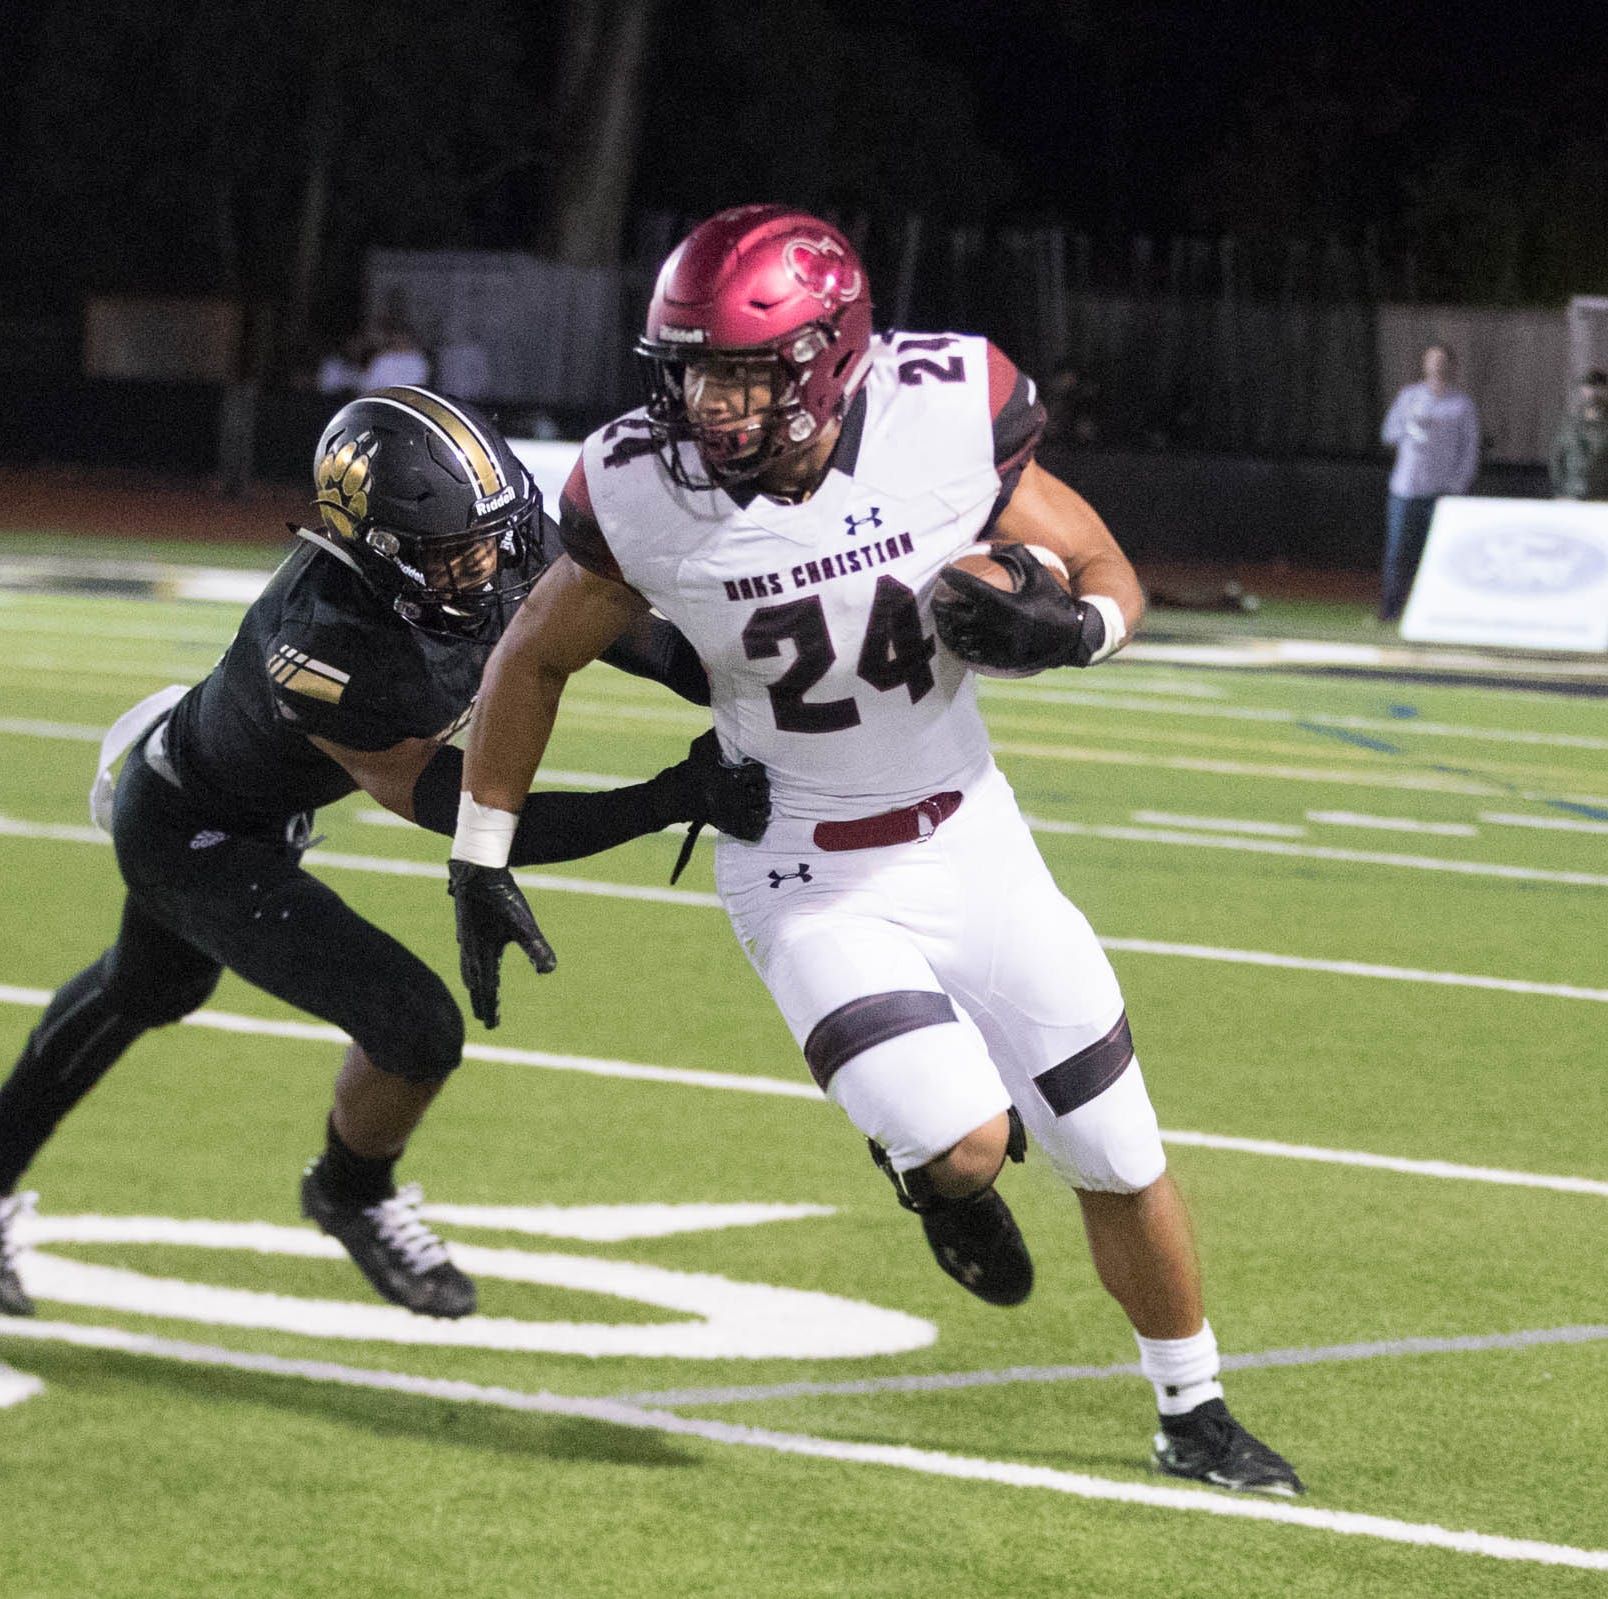 Oaks Christian, Calabasas football teams motivated by community bond during tragic events